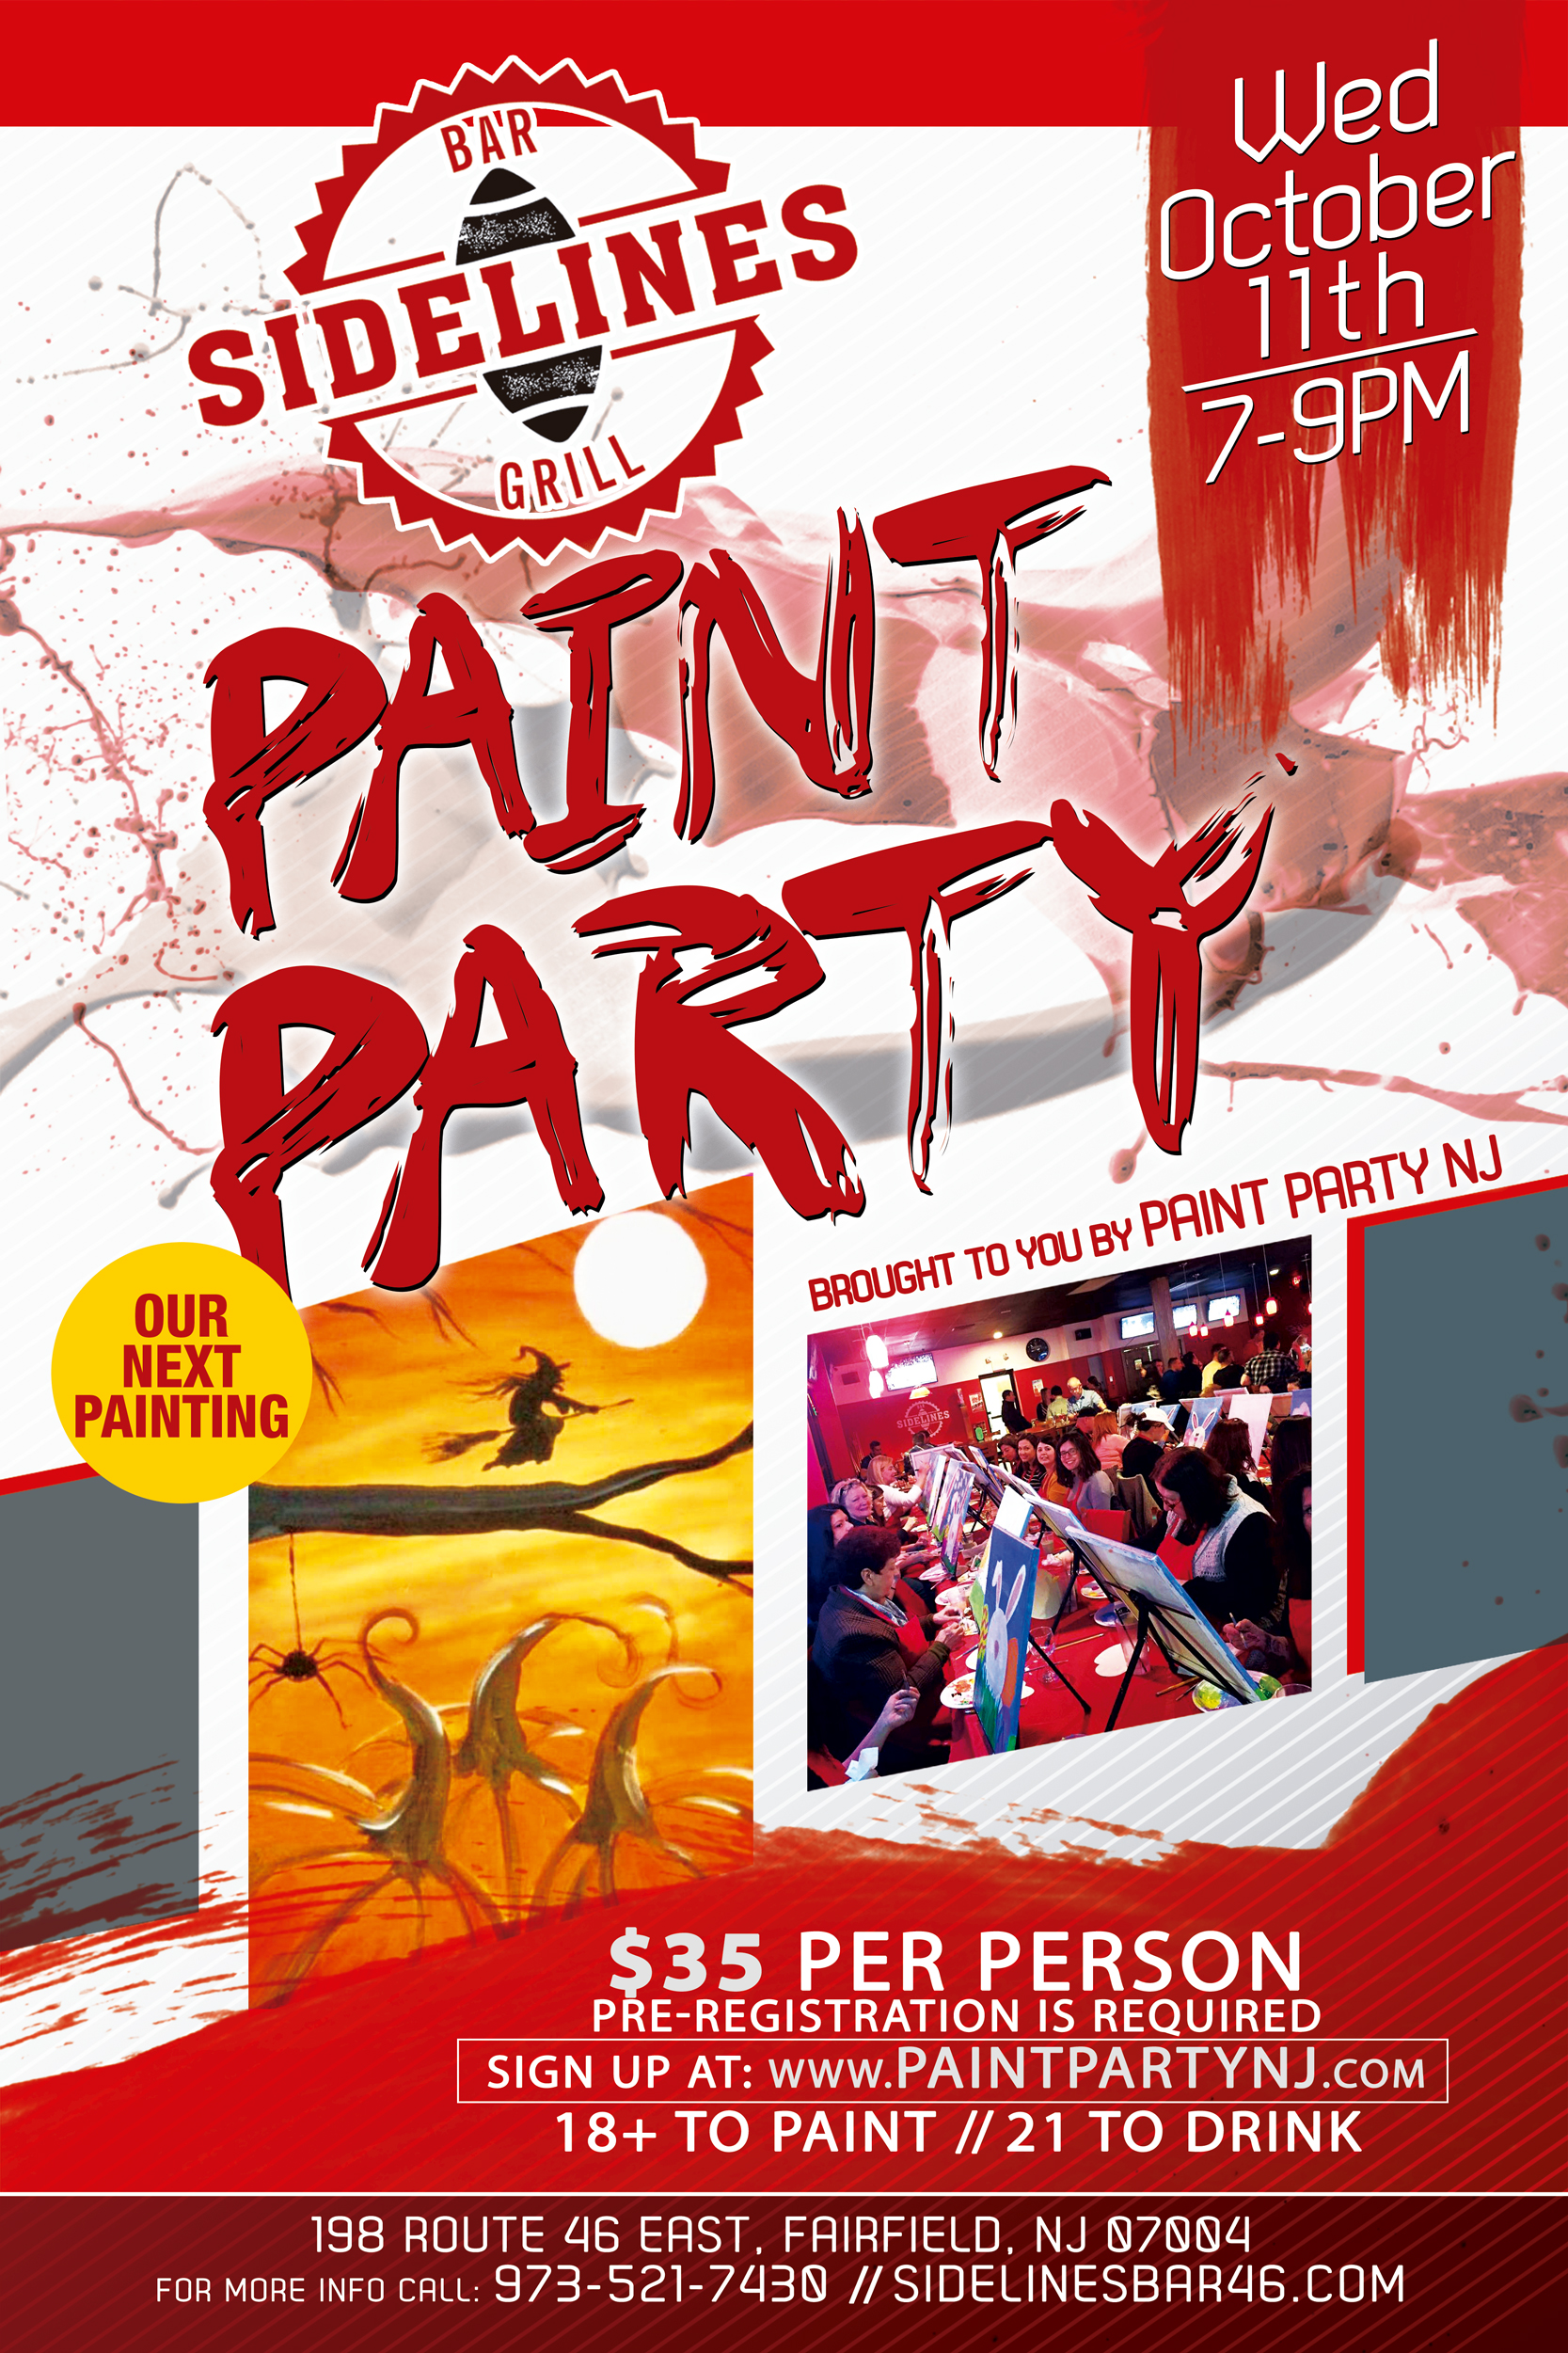 Sidelines_Paint_party_POSTER_Oct11.jpg